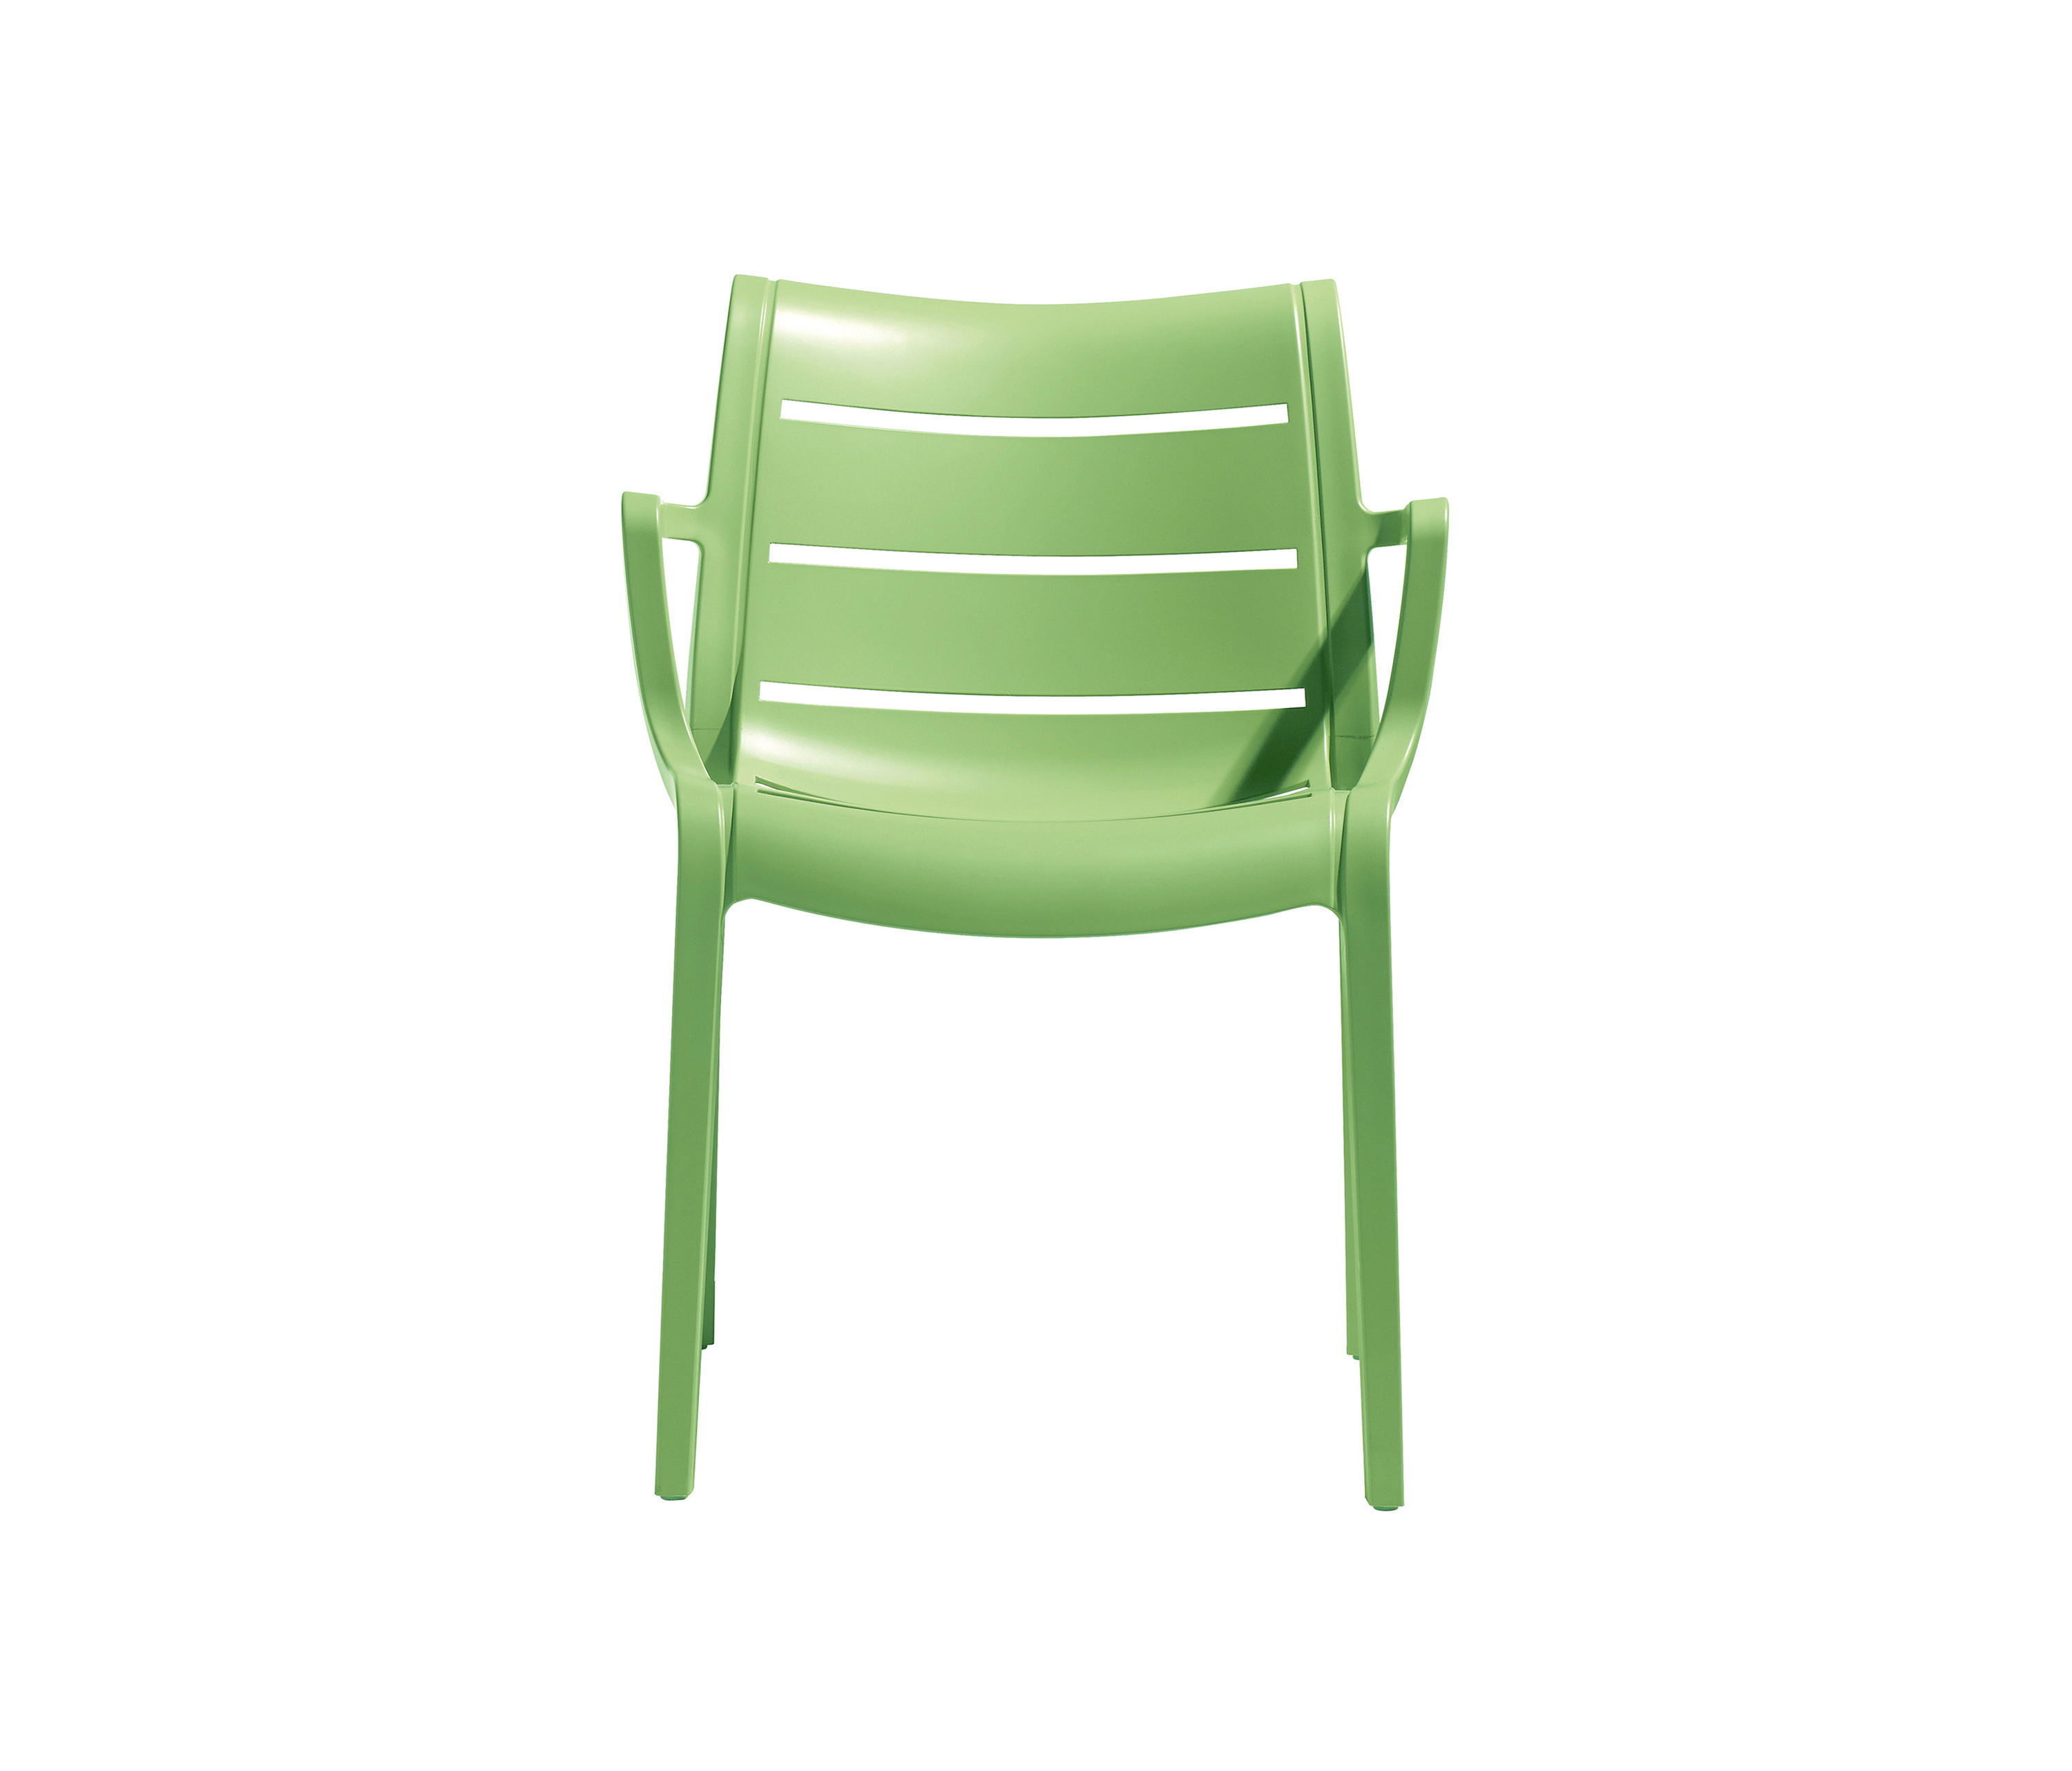 SUNSET CHAIR - Chairs from Scab Design   Architonic